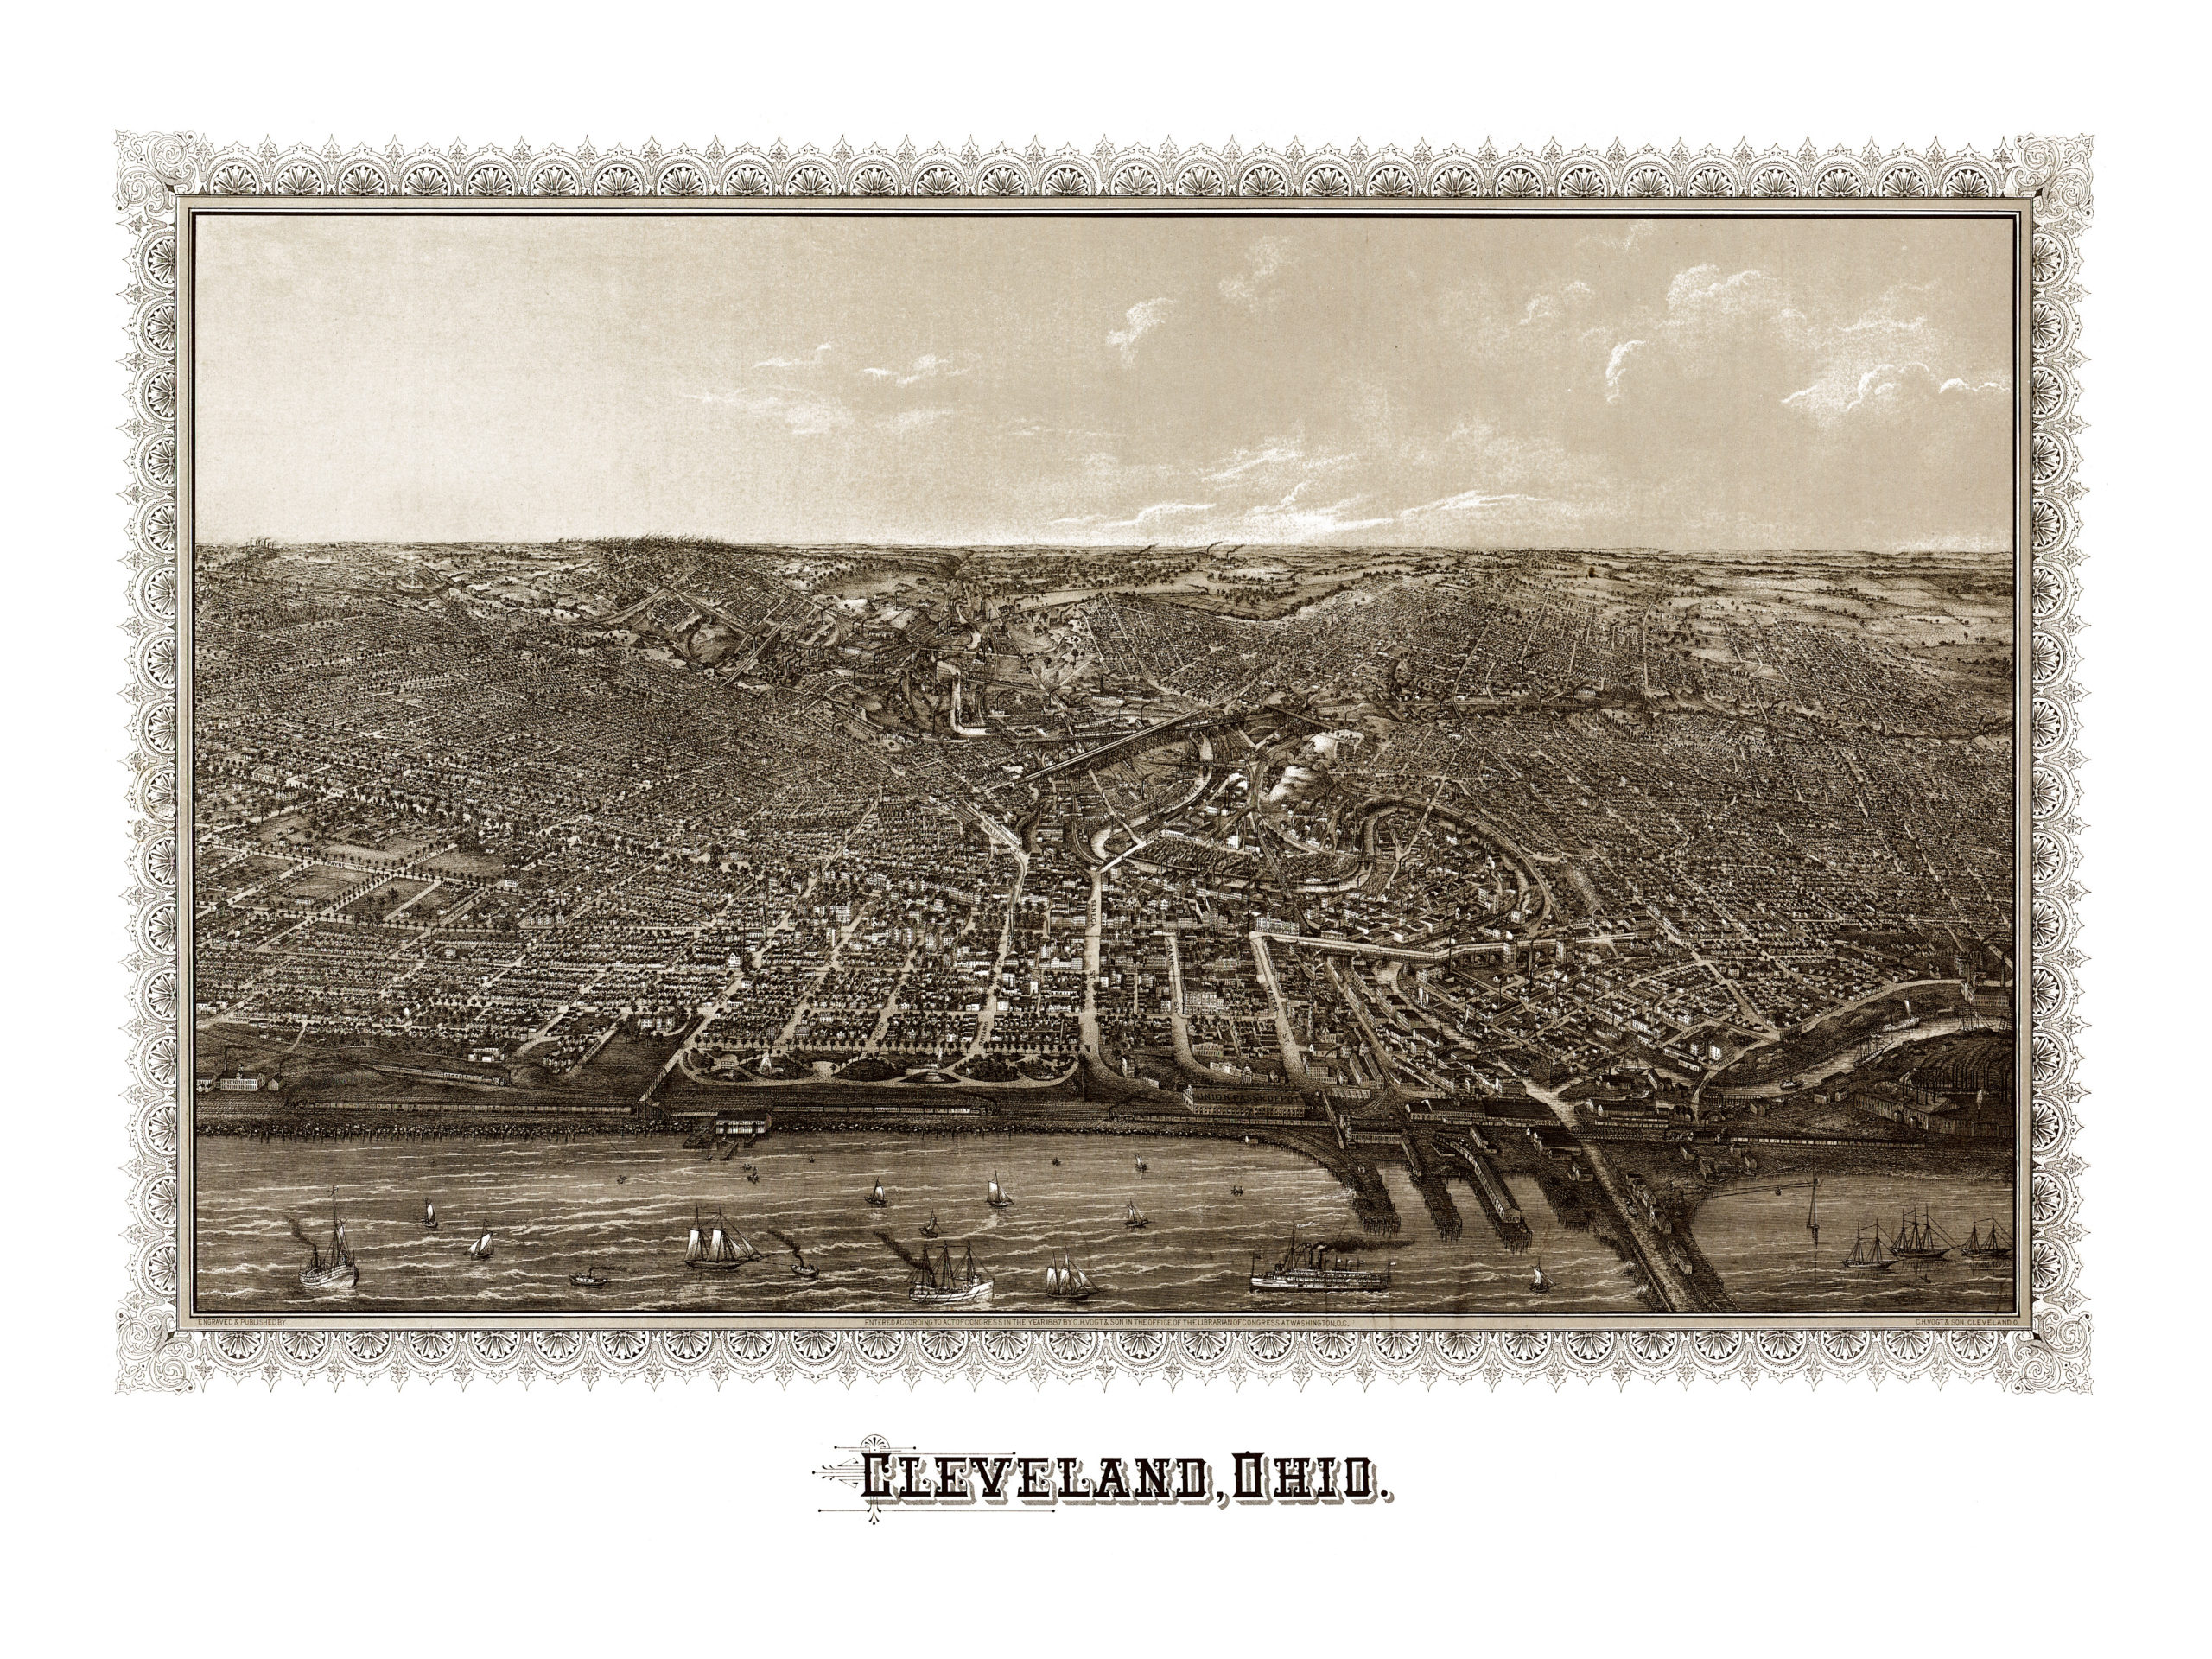 Beautifully detailed map of Cleveland, Ohio in 1887 - KNOWOL on map of comsewogue, map of columbia point, map of casselberry, map of locust point, map of university heights, map of lake panasoffkee, map of holly hill, map of oak hill, map of government center, map of gordonsville, map of kenansville, map of cassadaga, map of carrabelle, map of mead, map of pahokee, map of matlacha, map of seaport district, map of long key, map of southwest orlando, map of wimauma,